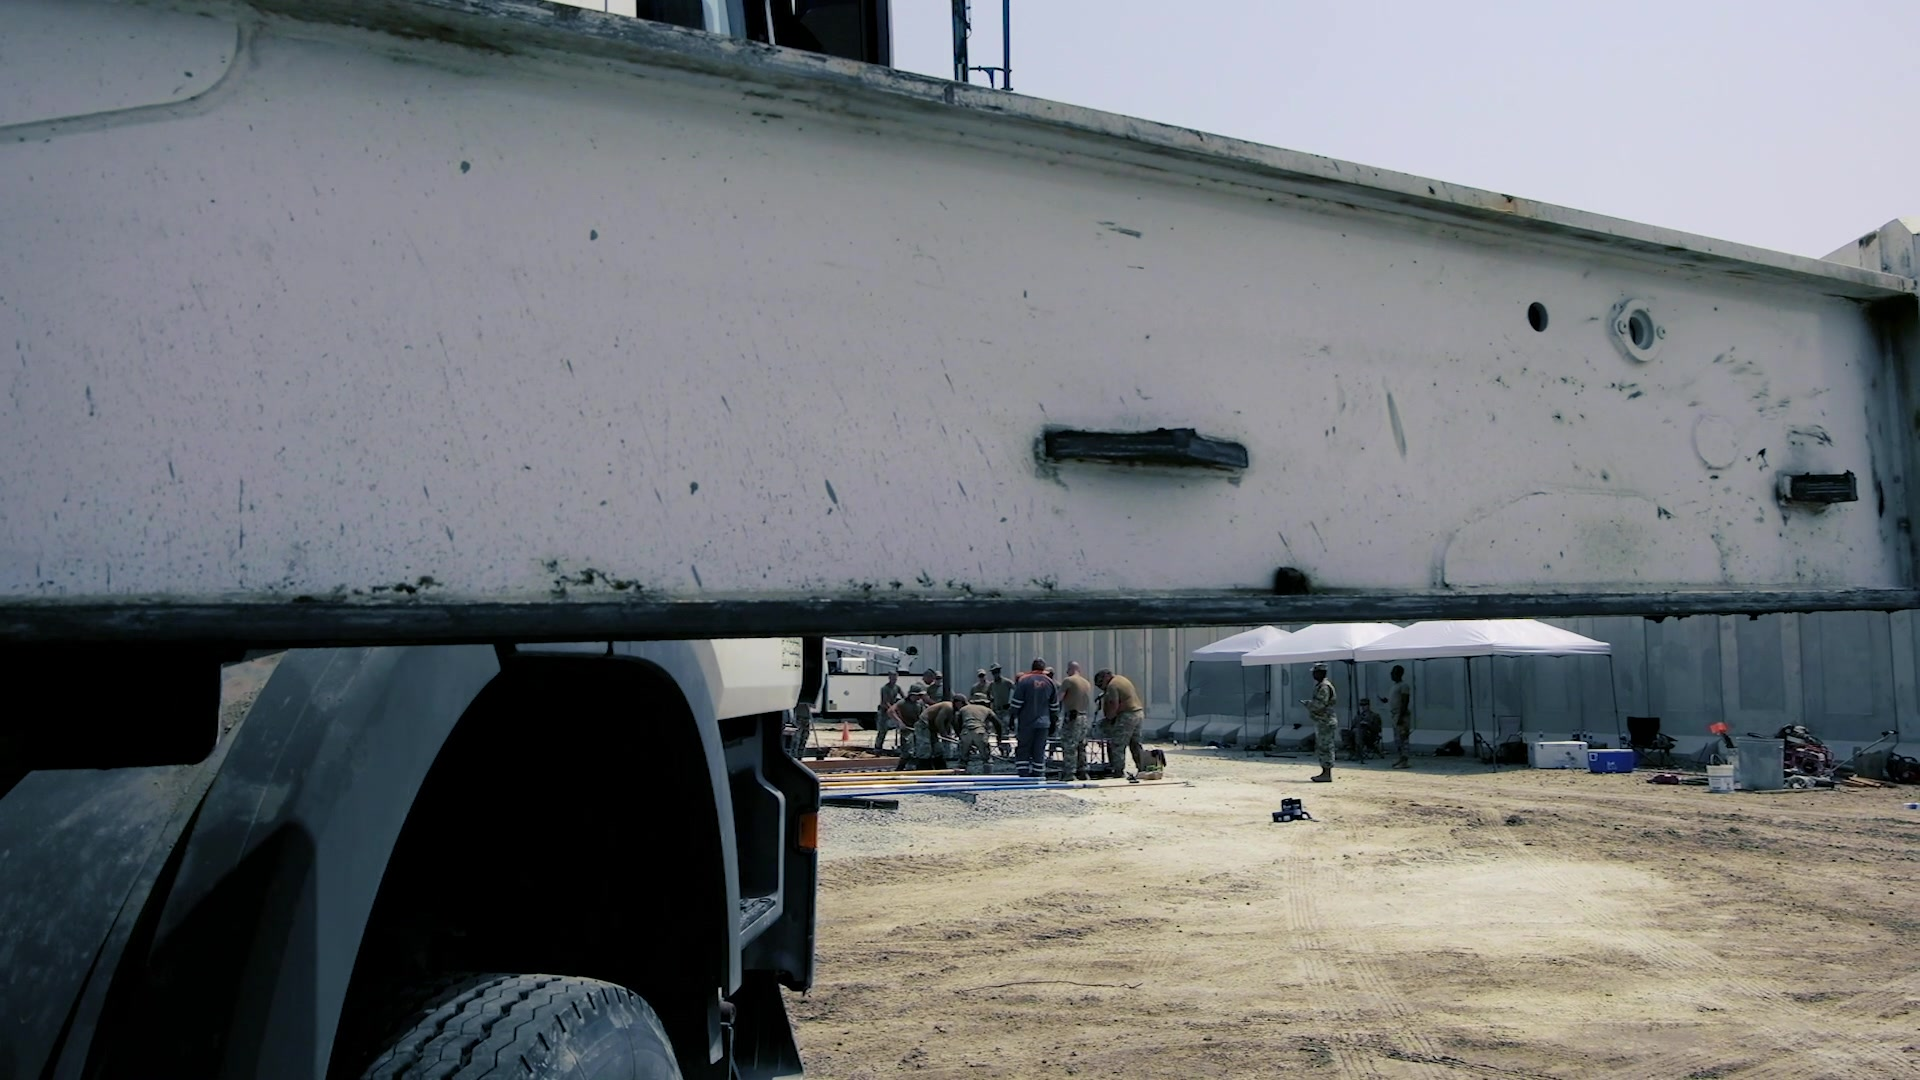 Dirt Boyz of the 380th Expeditionary Civil Engineer Squadron and the 1st  Expeditionary Civil Engineer Group work together constructing a slab of concrete that is a part of the beginning stages of a lodging expansion project at Al Dhafra Air Base, United Arab Emirates.